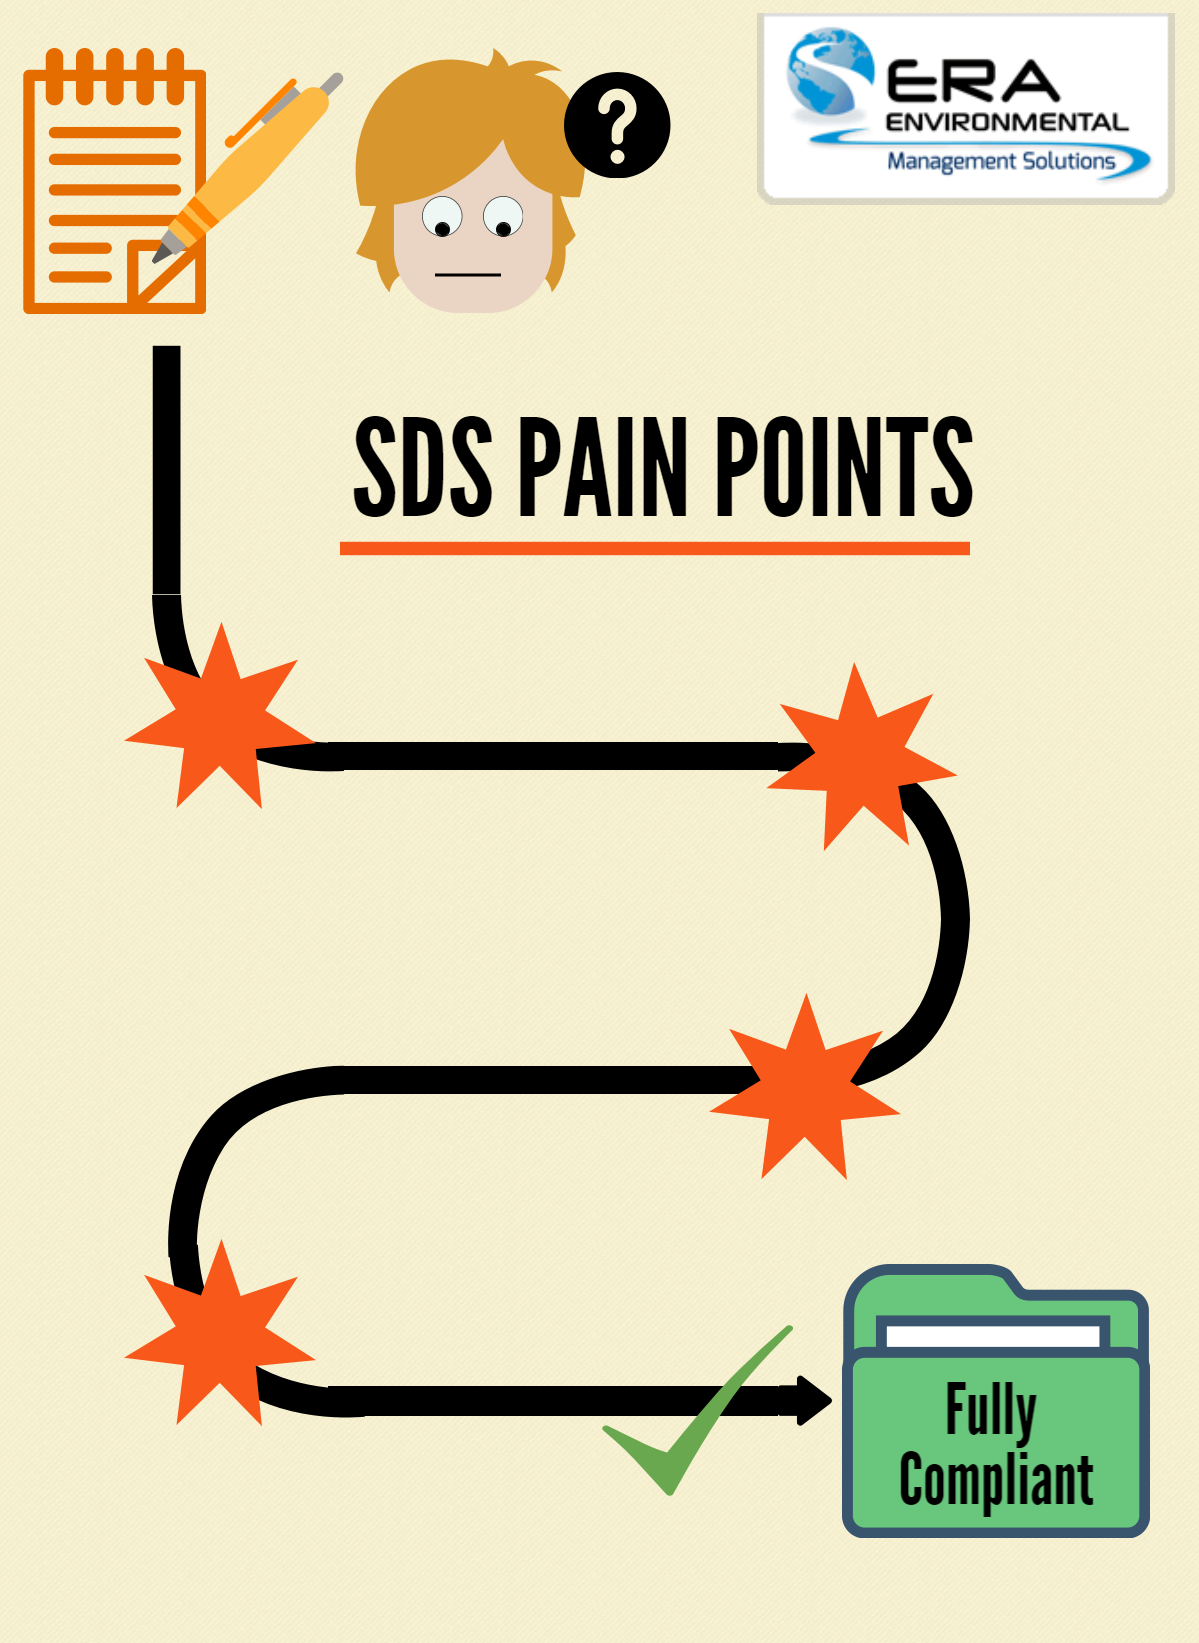 SDS Pain Points - Image.png